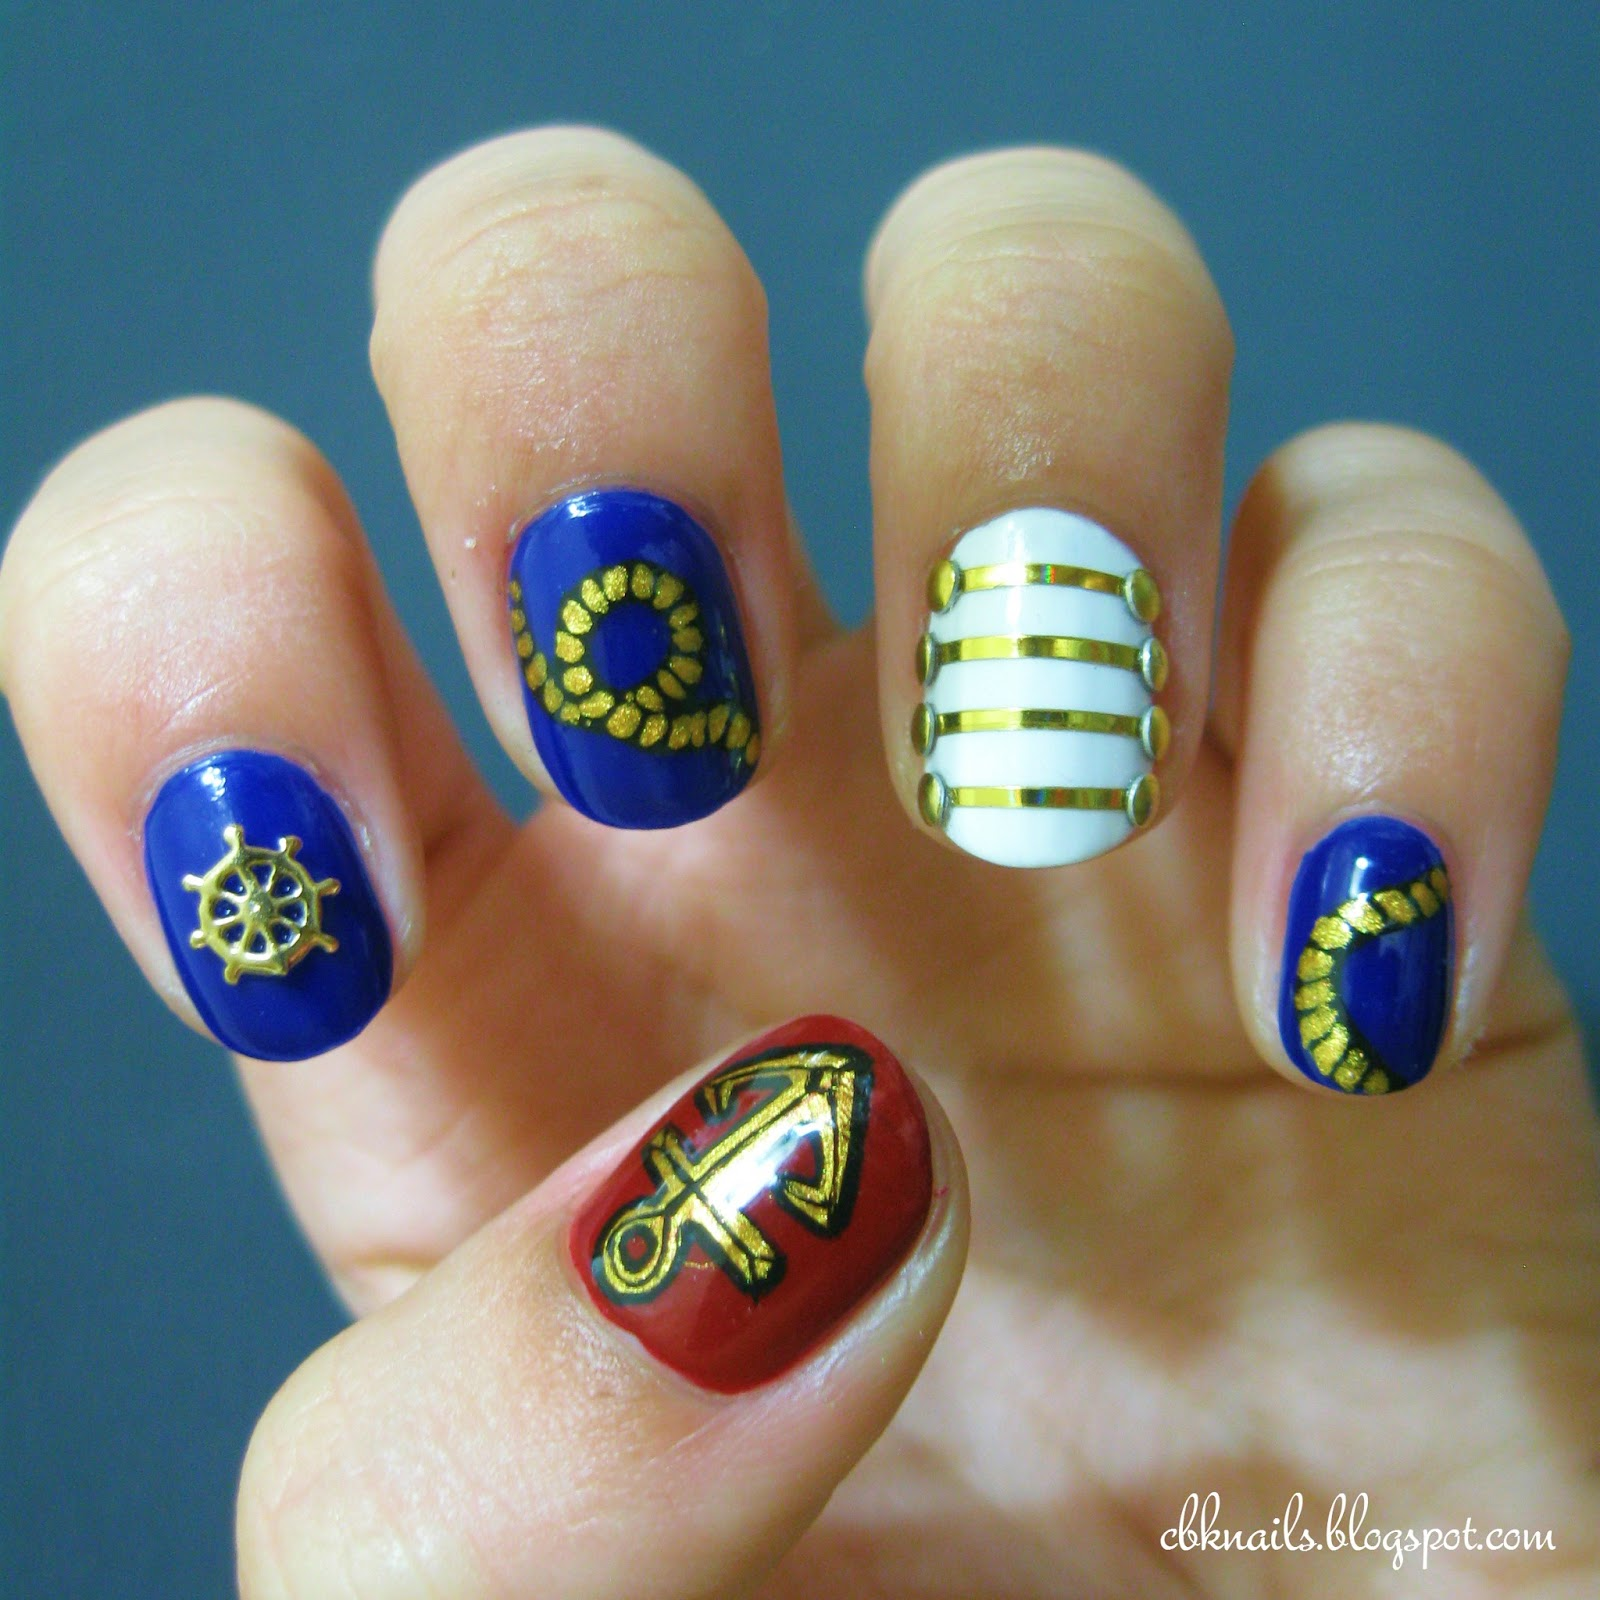 CBK Nails: Nautical nails, and a mini review!